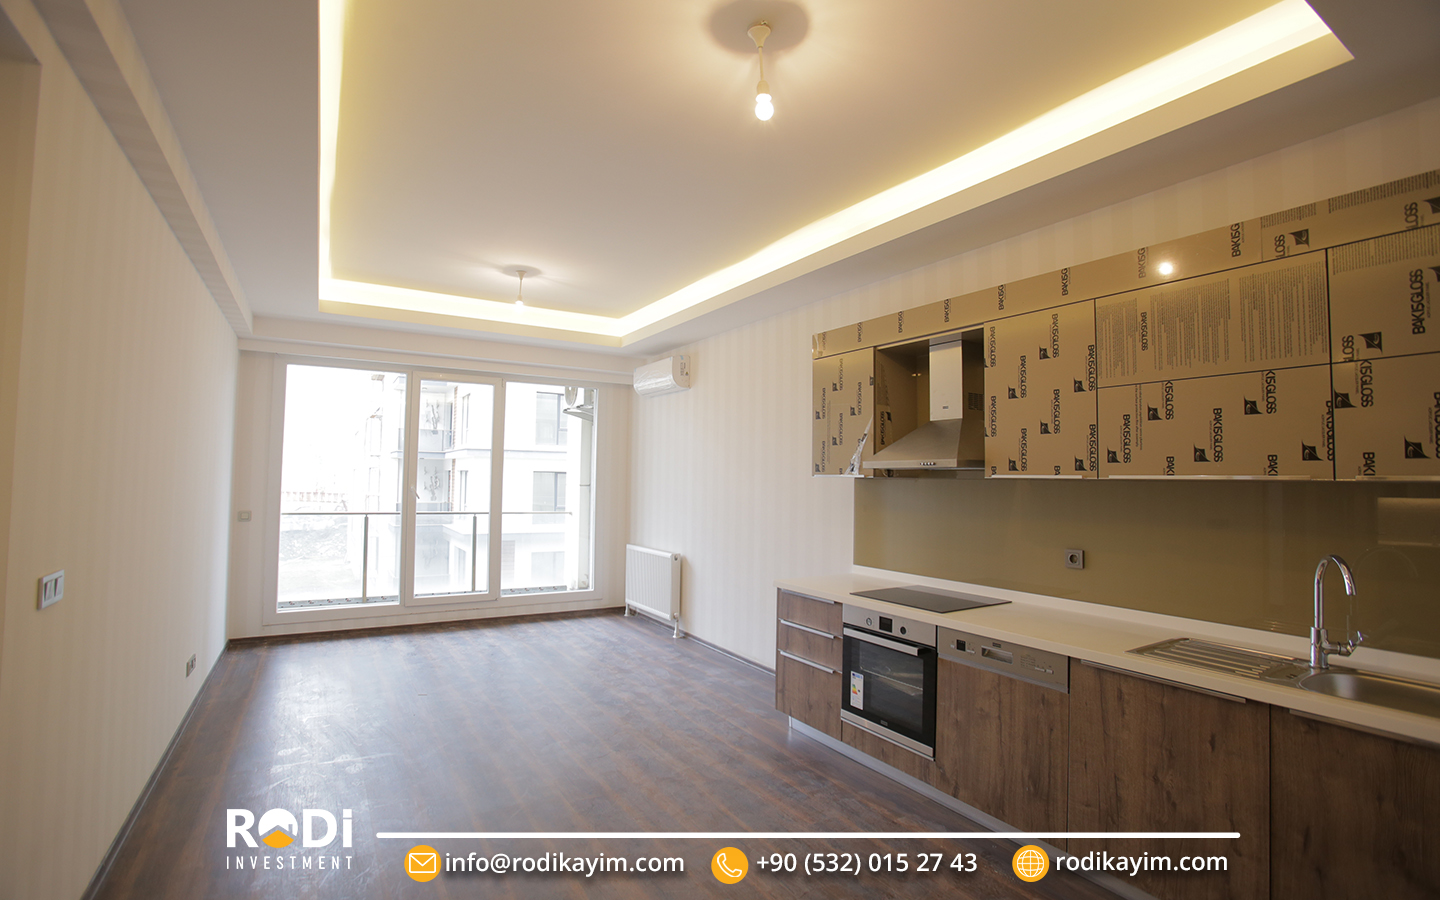 Gunes bahce real estate project in istanbul 2